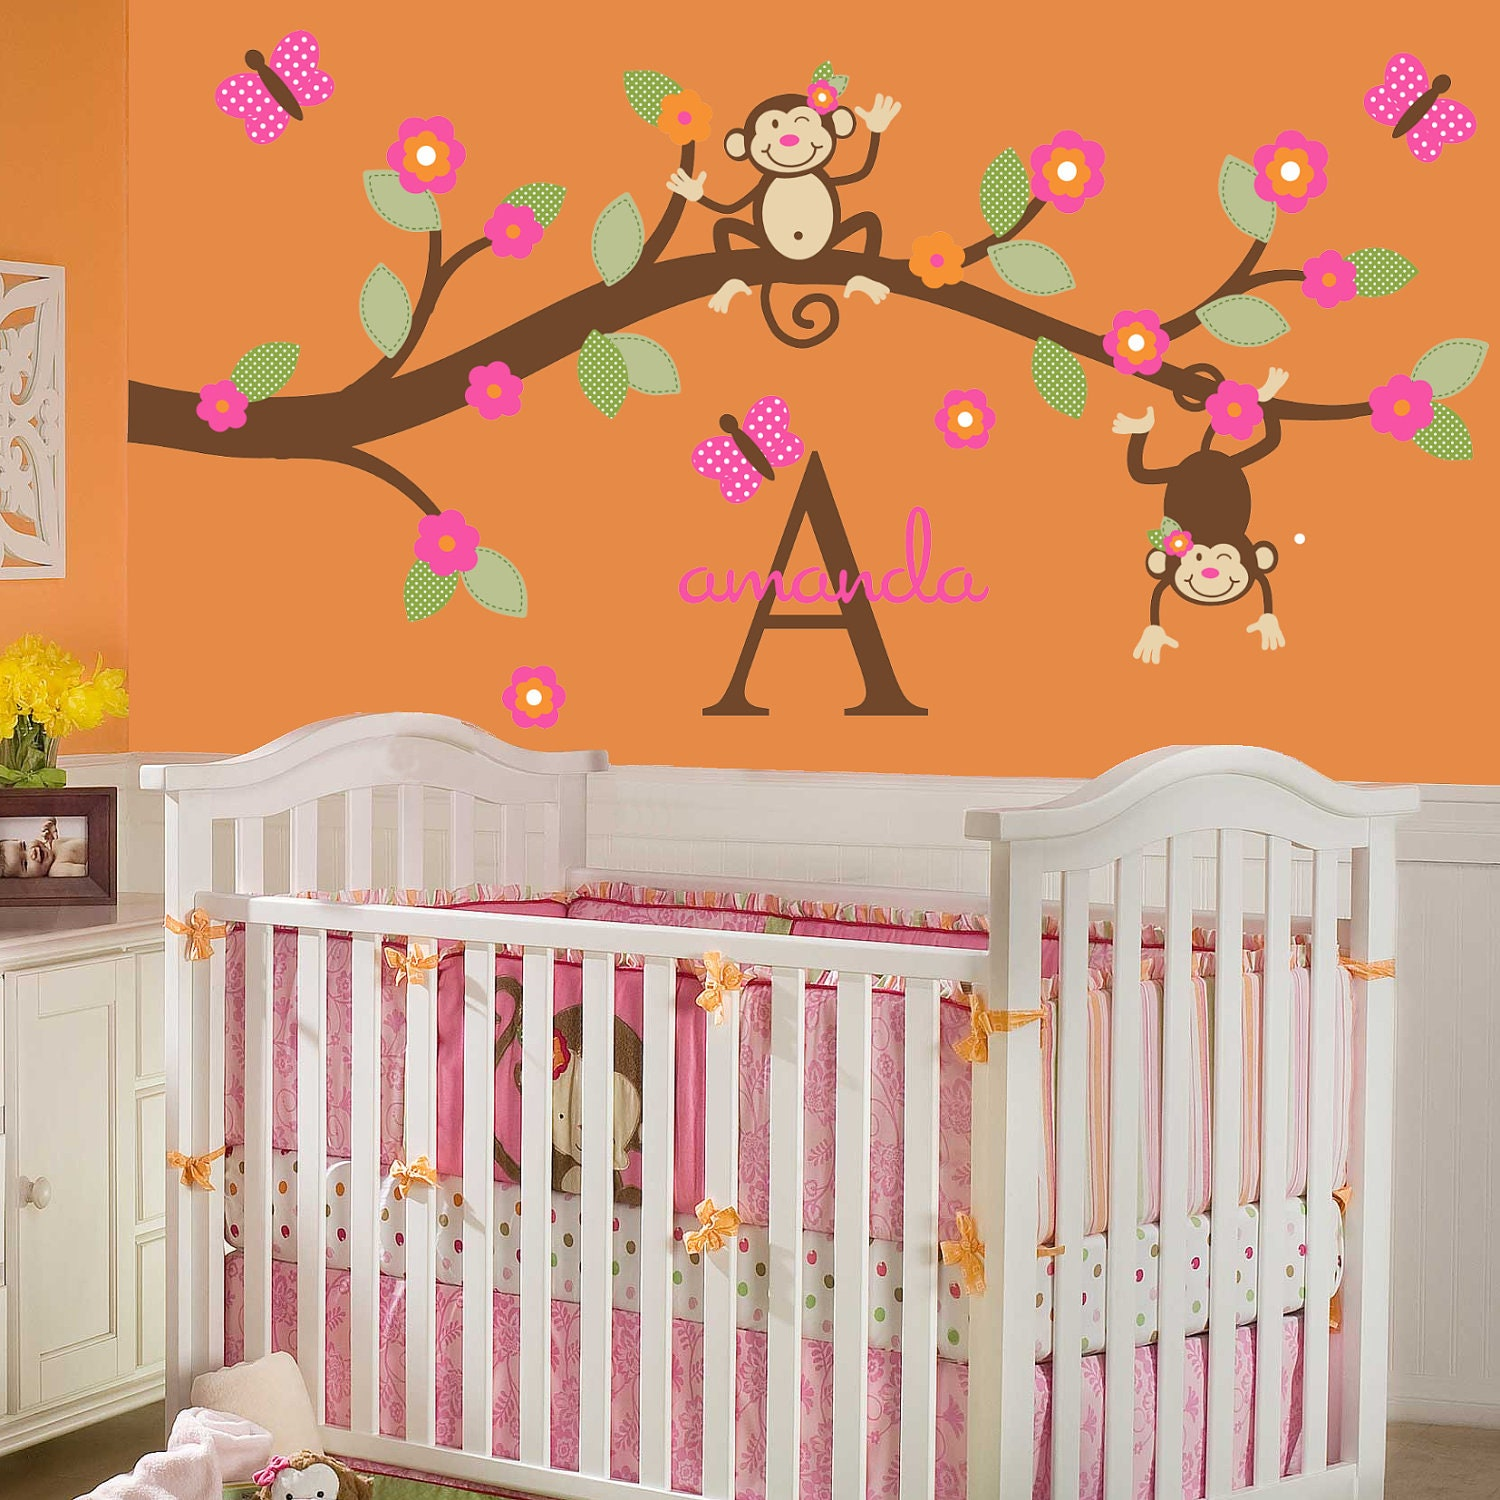 monkey wall decal baby toddler nursery decor kids branch baby zoom